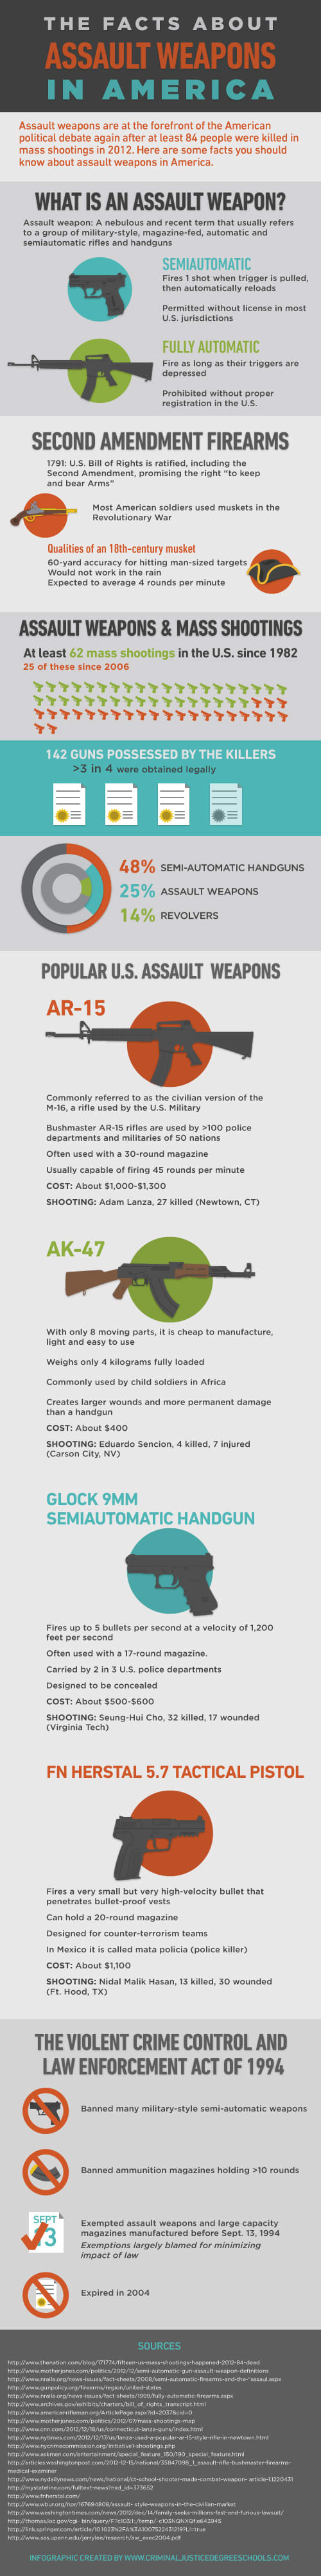 assault weapons infographic